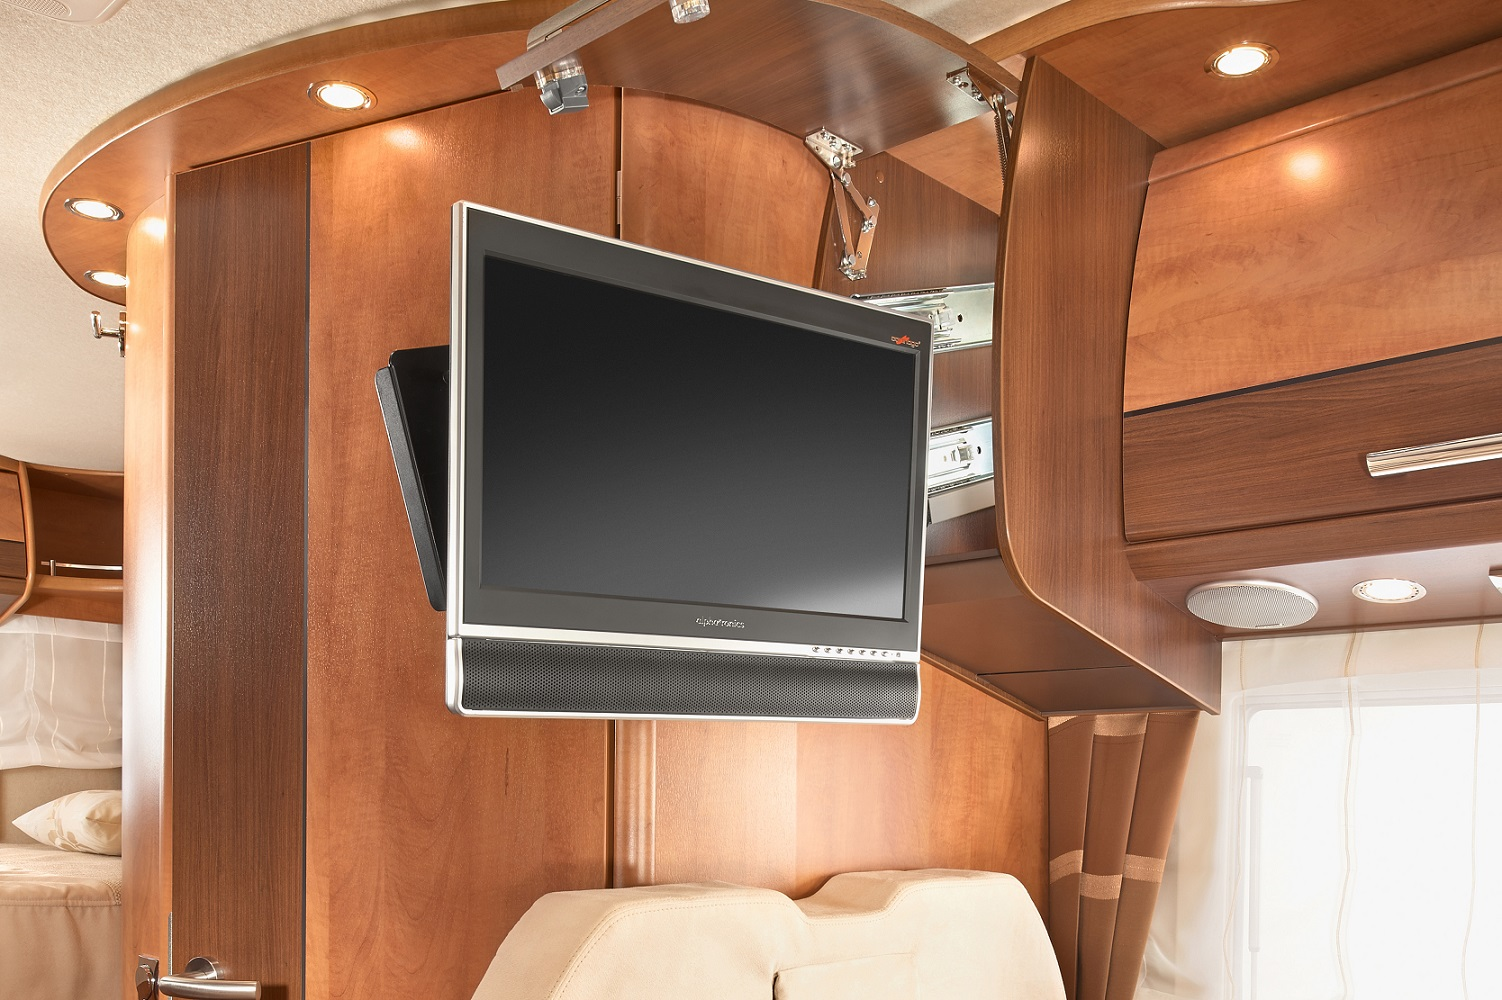 quelle tv choisir pour votre camping car someweb. Black Bedroom Furniture Sets. Home Design Ideas